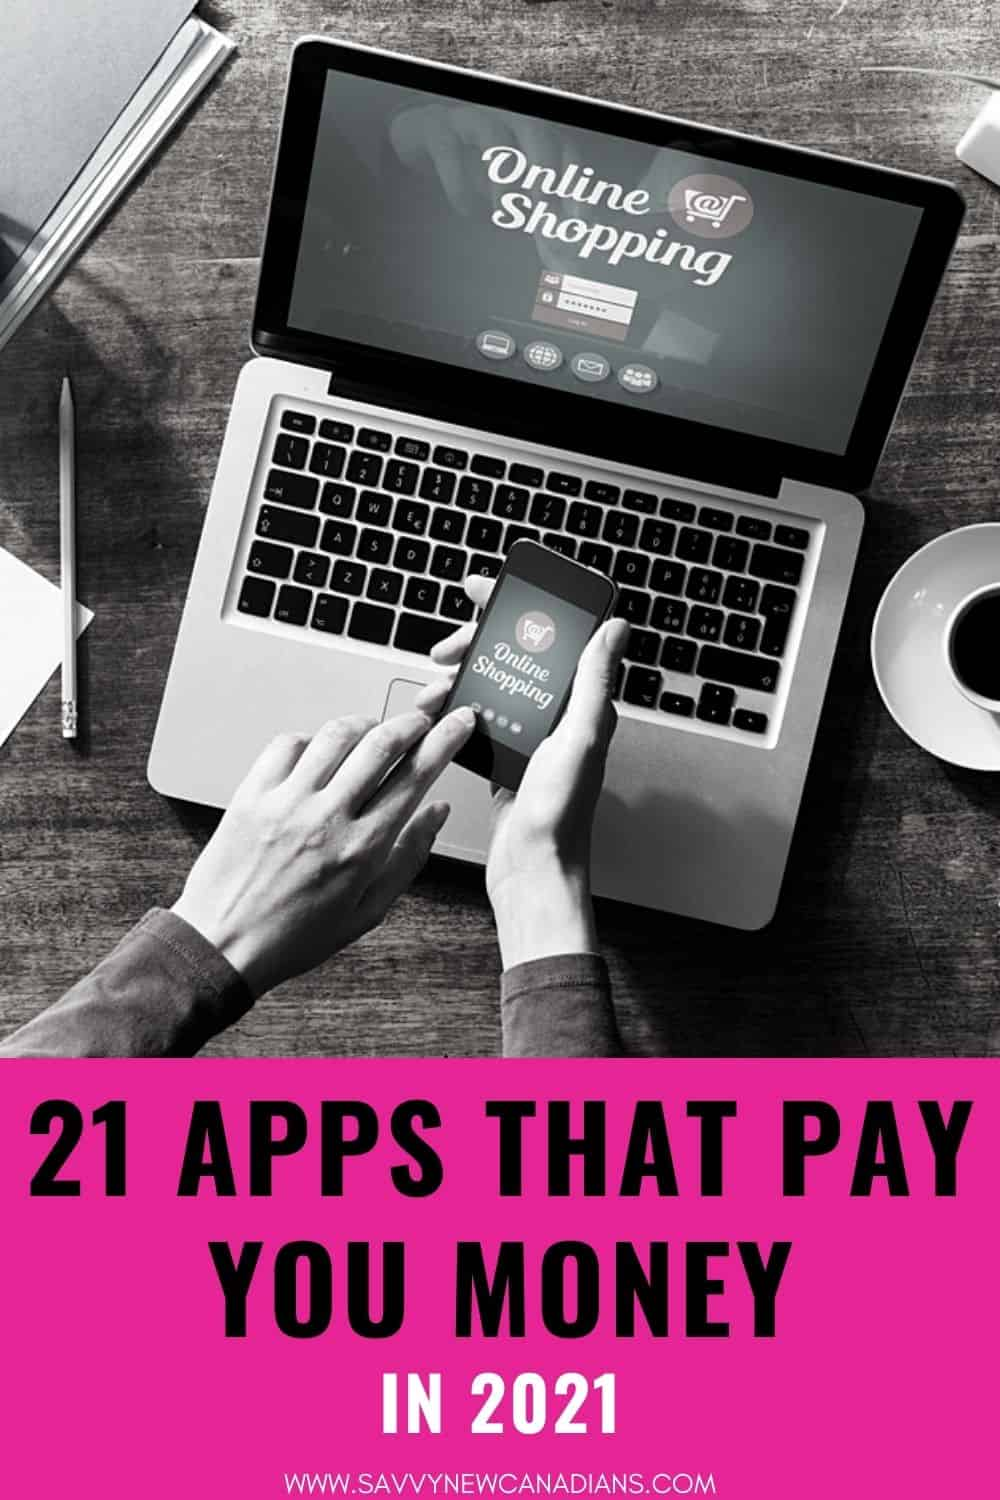 21 Apps That Pay You Money in 2021